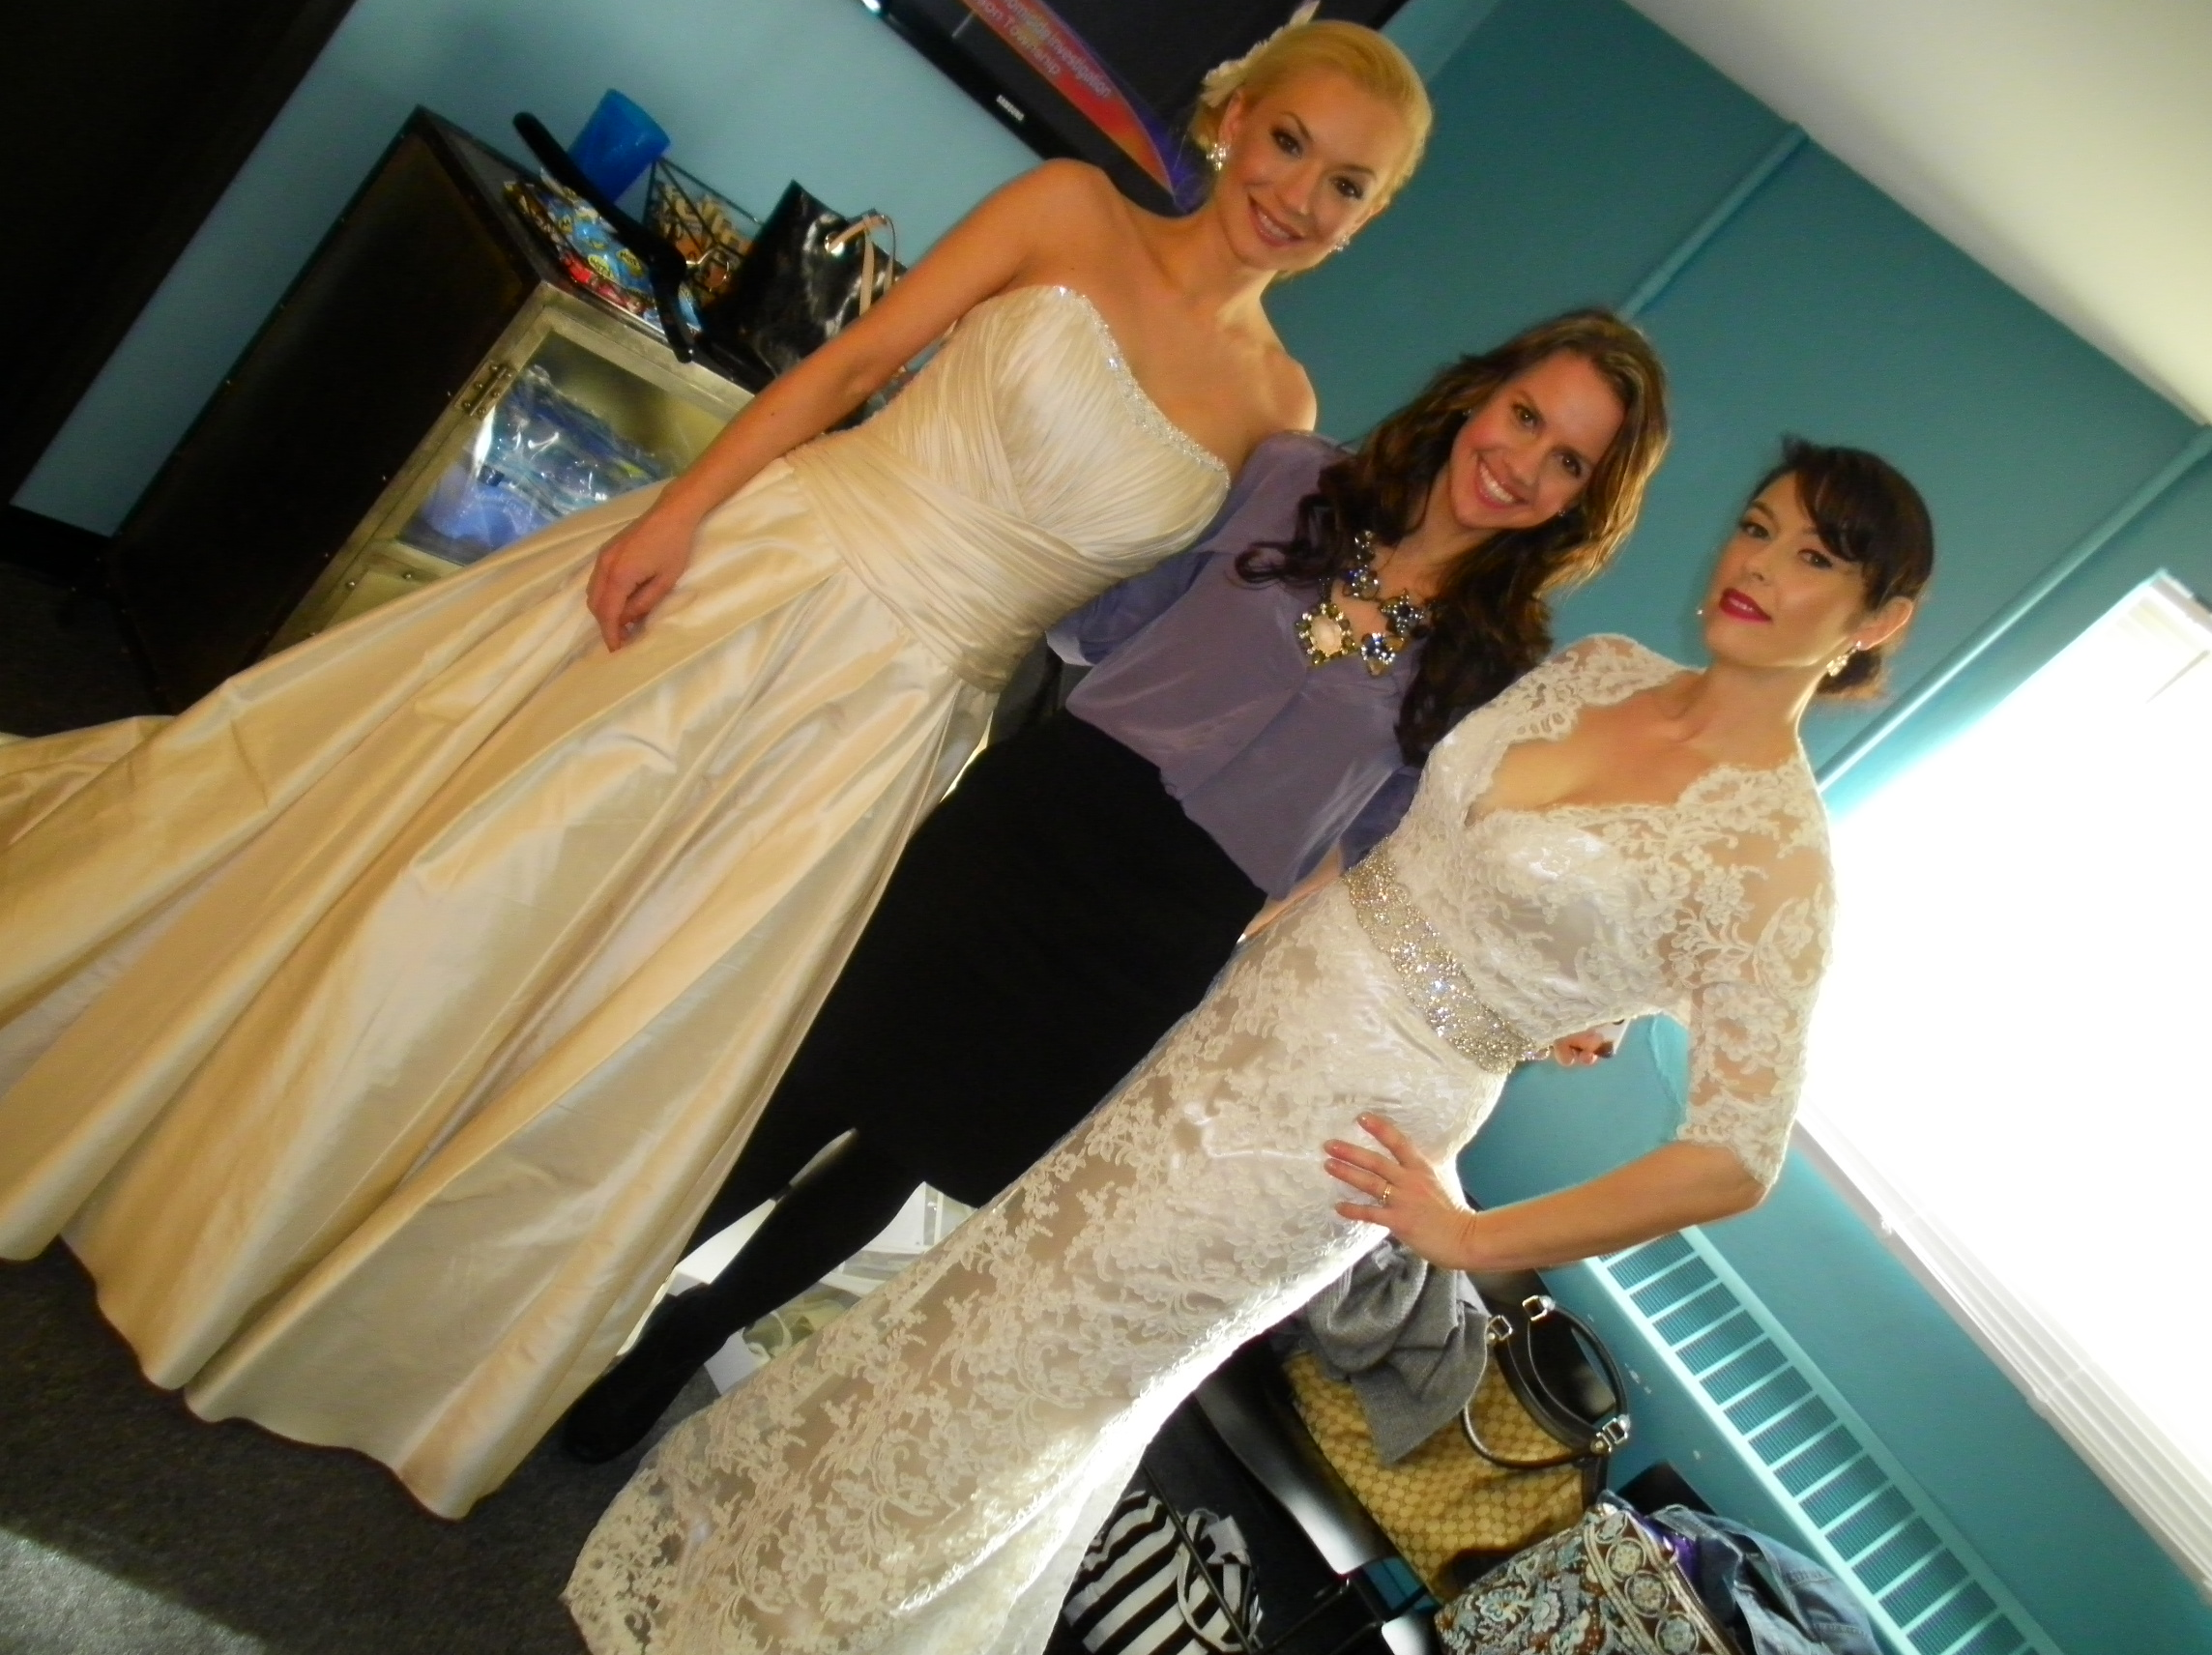 "On set of :Living Dayton"" at the WDTN channel 2 news station.   Lindsay Fork owner of LUXEredux and La Jeune Mariee Bridal posing with the models from the show."